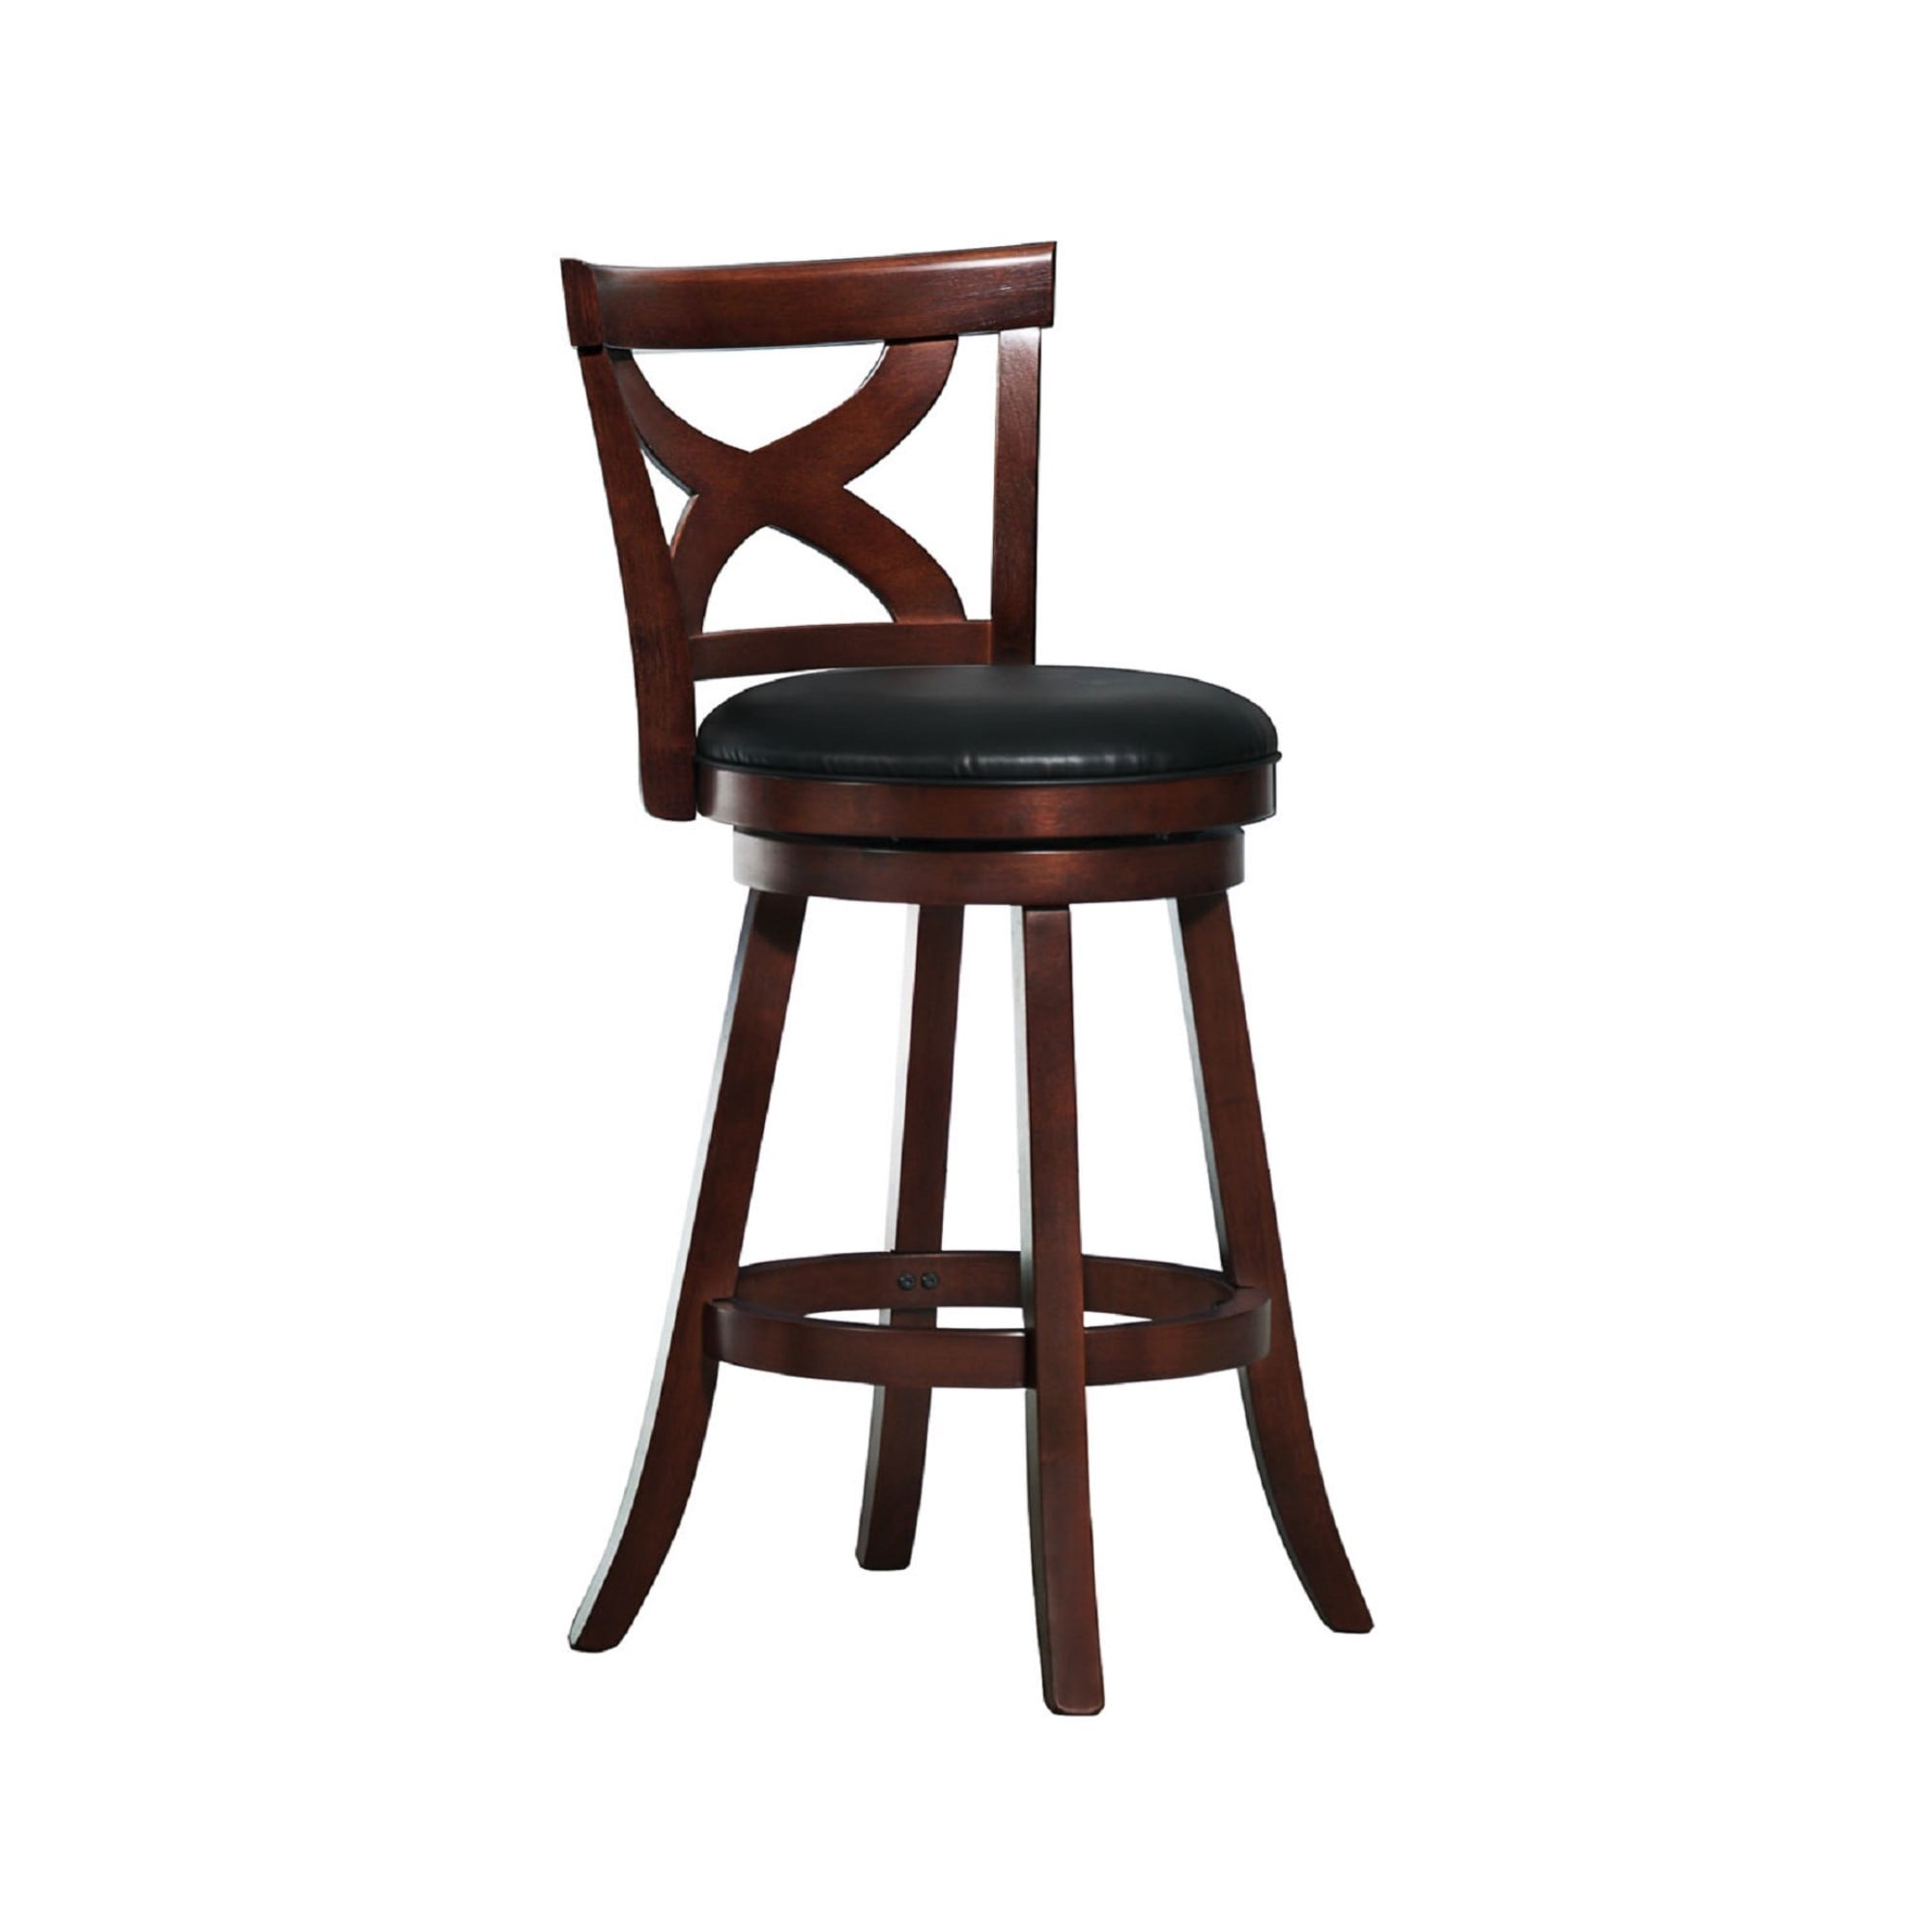 Crosby Cherry X Back 29 Inch Swivel High Back Barstool By Inspire Q Classic On Sale Overstock 6523014